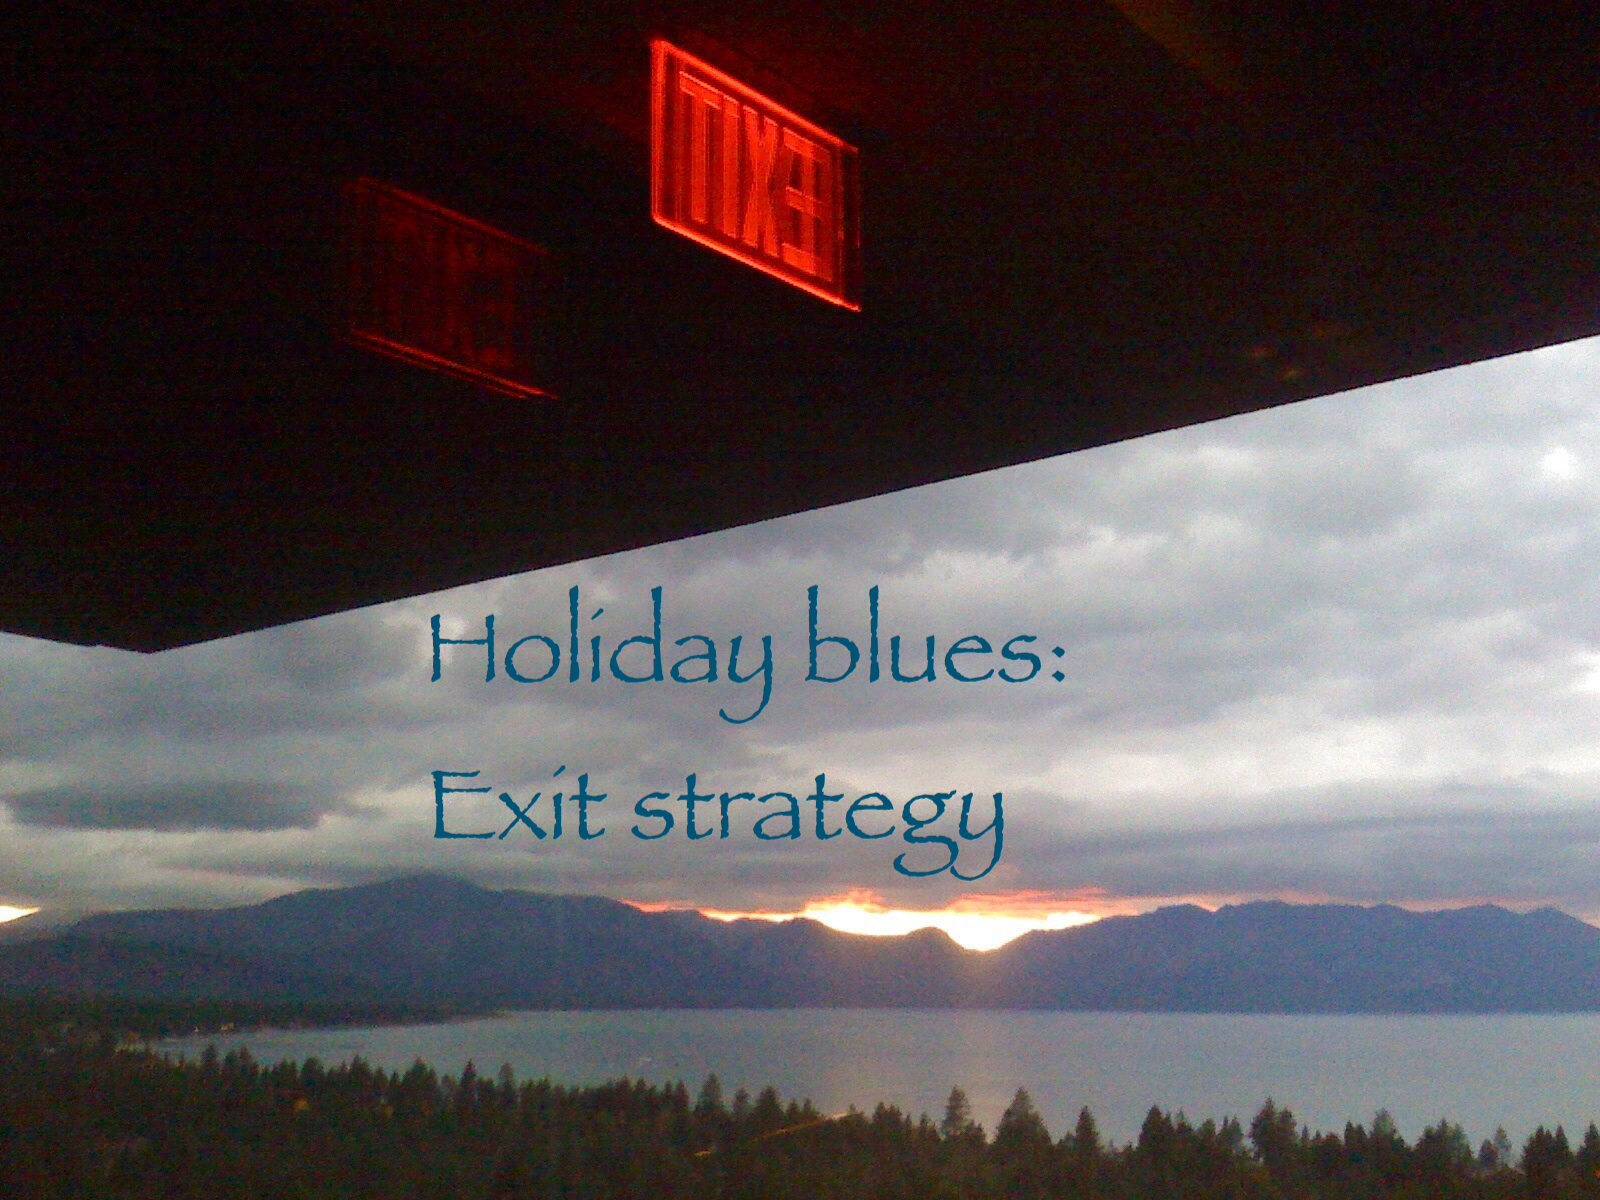 Holiday blues: exit stategy